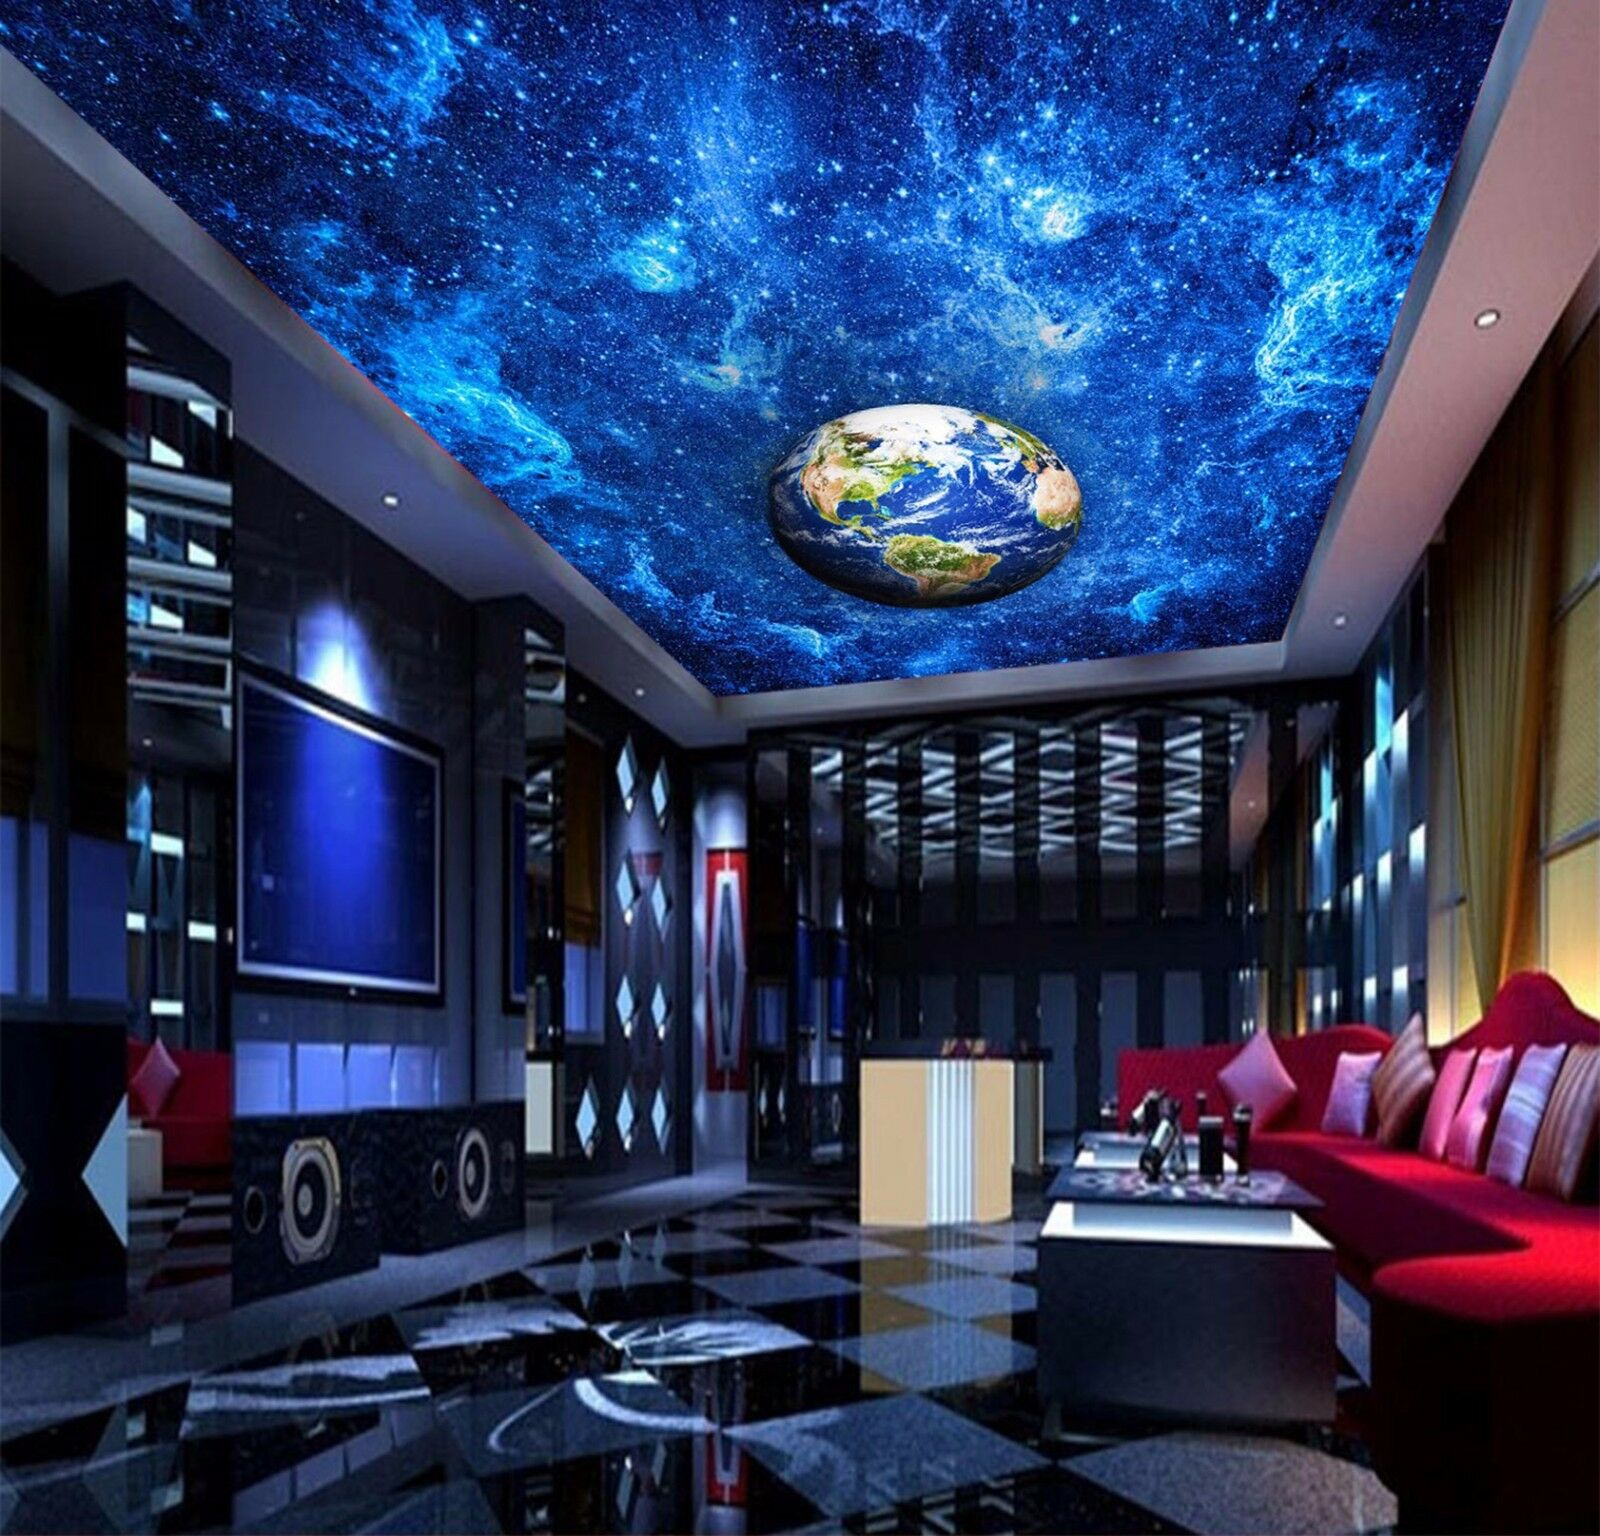 3D Planet Bule Bule Bule 6 Ceiling WallPaper Murals Wall Print Decal Deco AJ WALLPAPER AU 152895